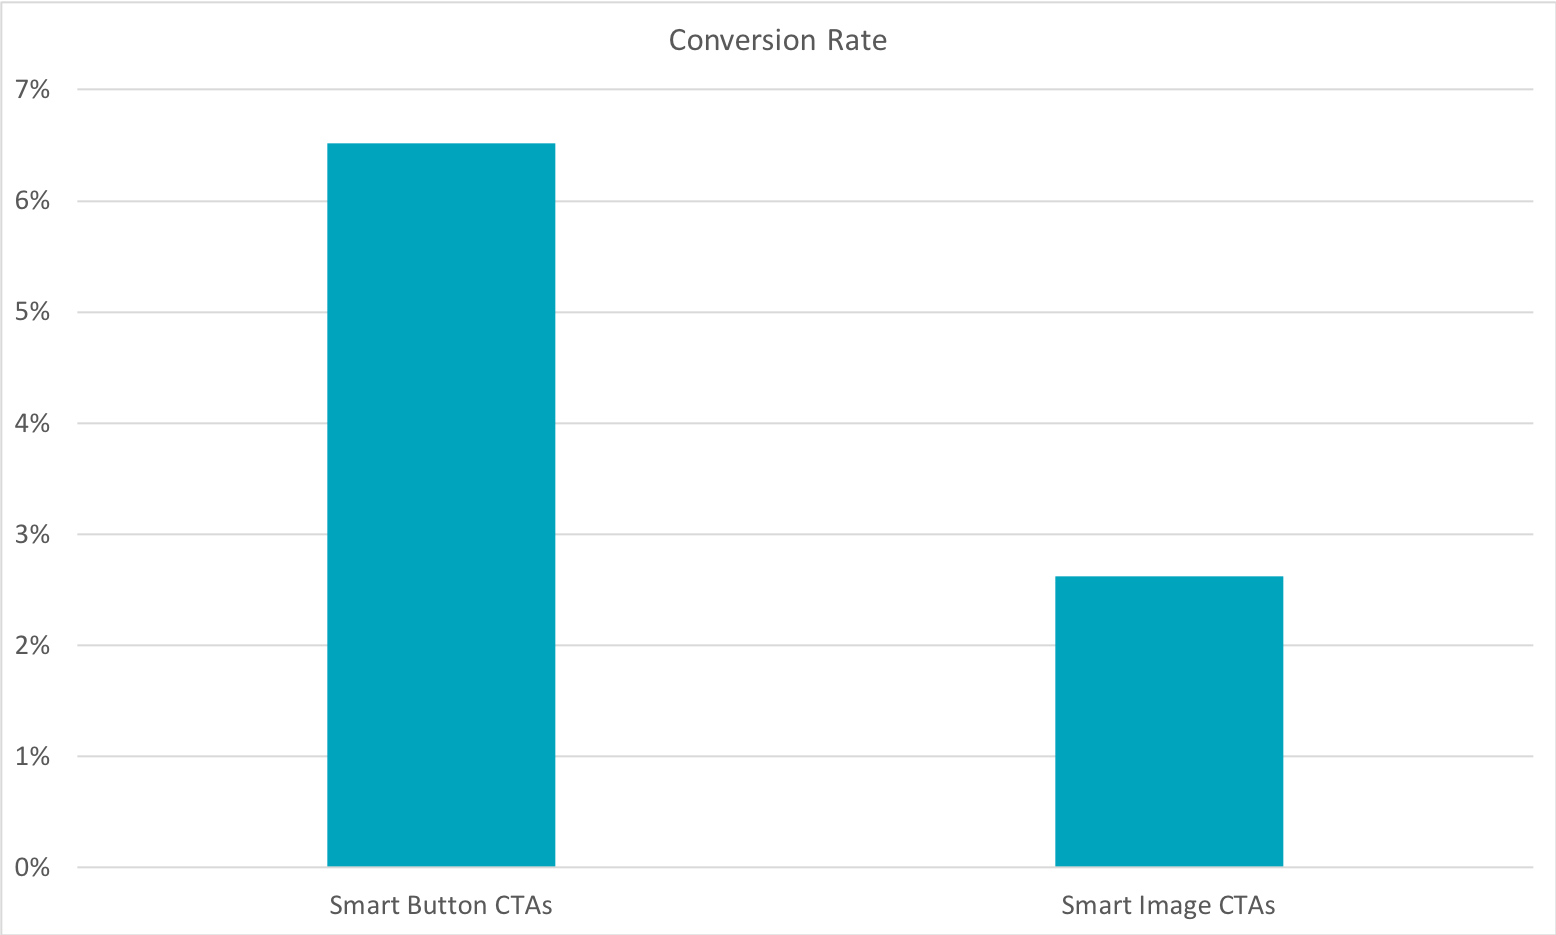 Bar graph showing how smart button CTAs perform better than image CTAs